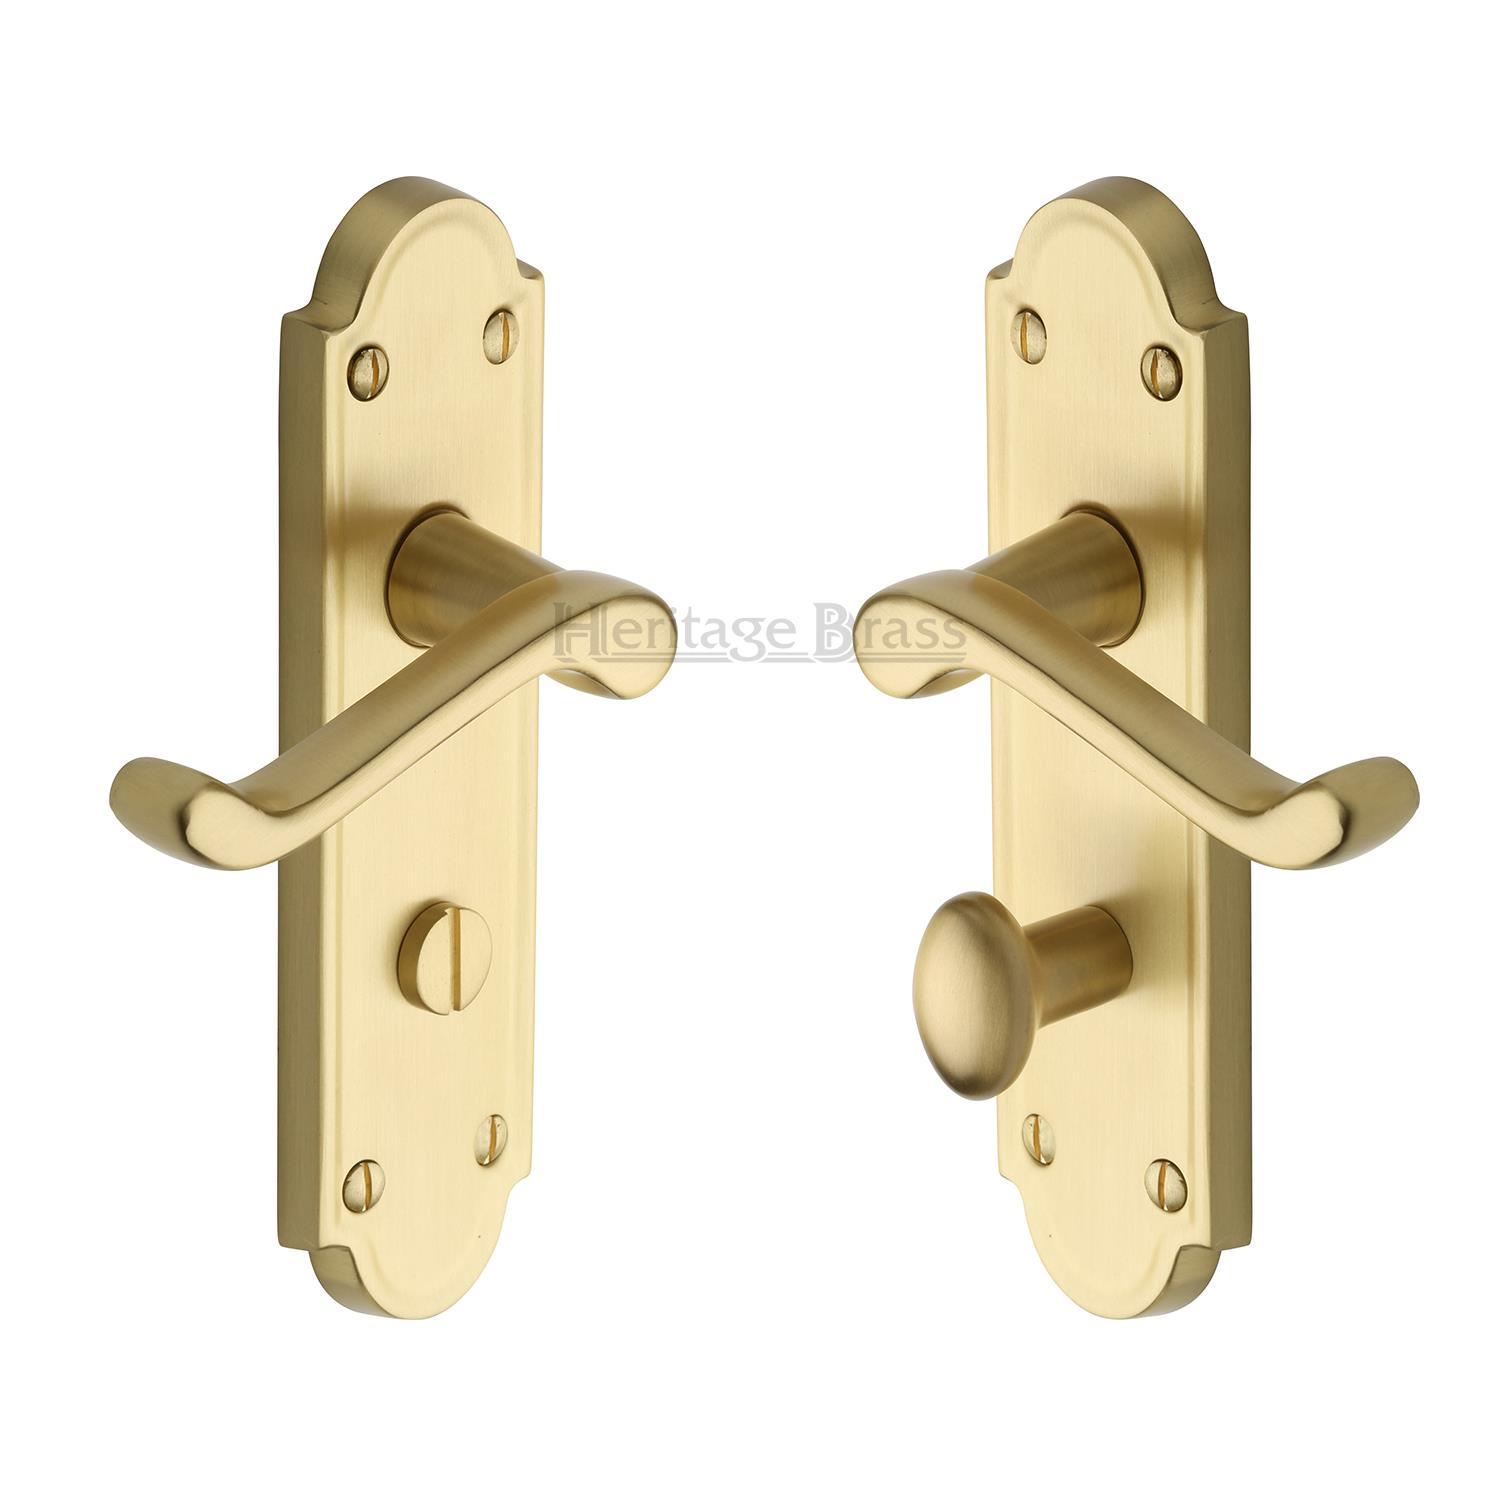 Meridian Door Handle Lock Latch Bath Euro Period Home